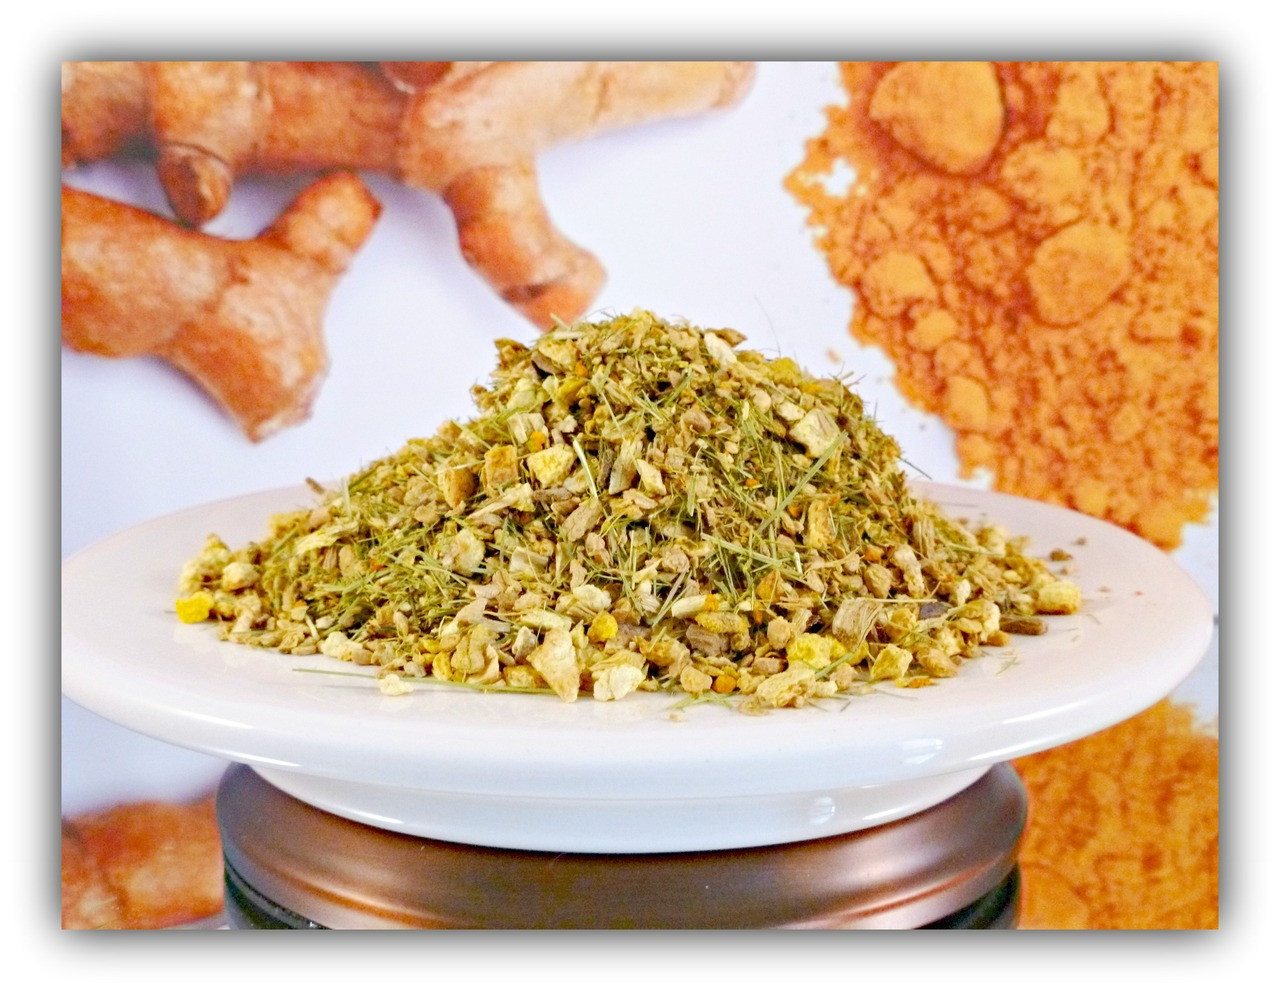 Spice of Life Ginger Turmeric Tonic (ORGANIC) - 2 oz (56 g, approx  19 cups)